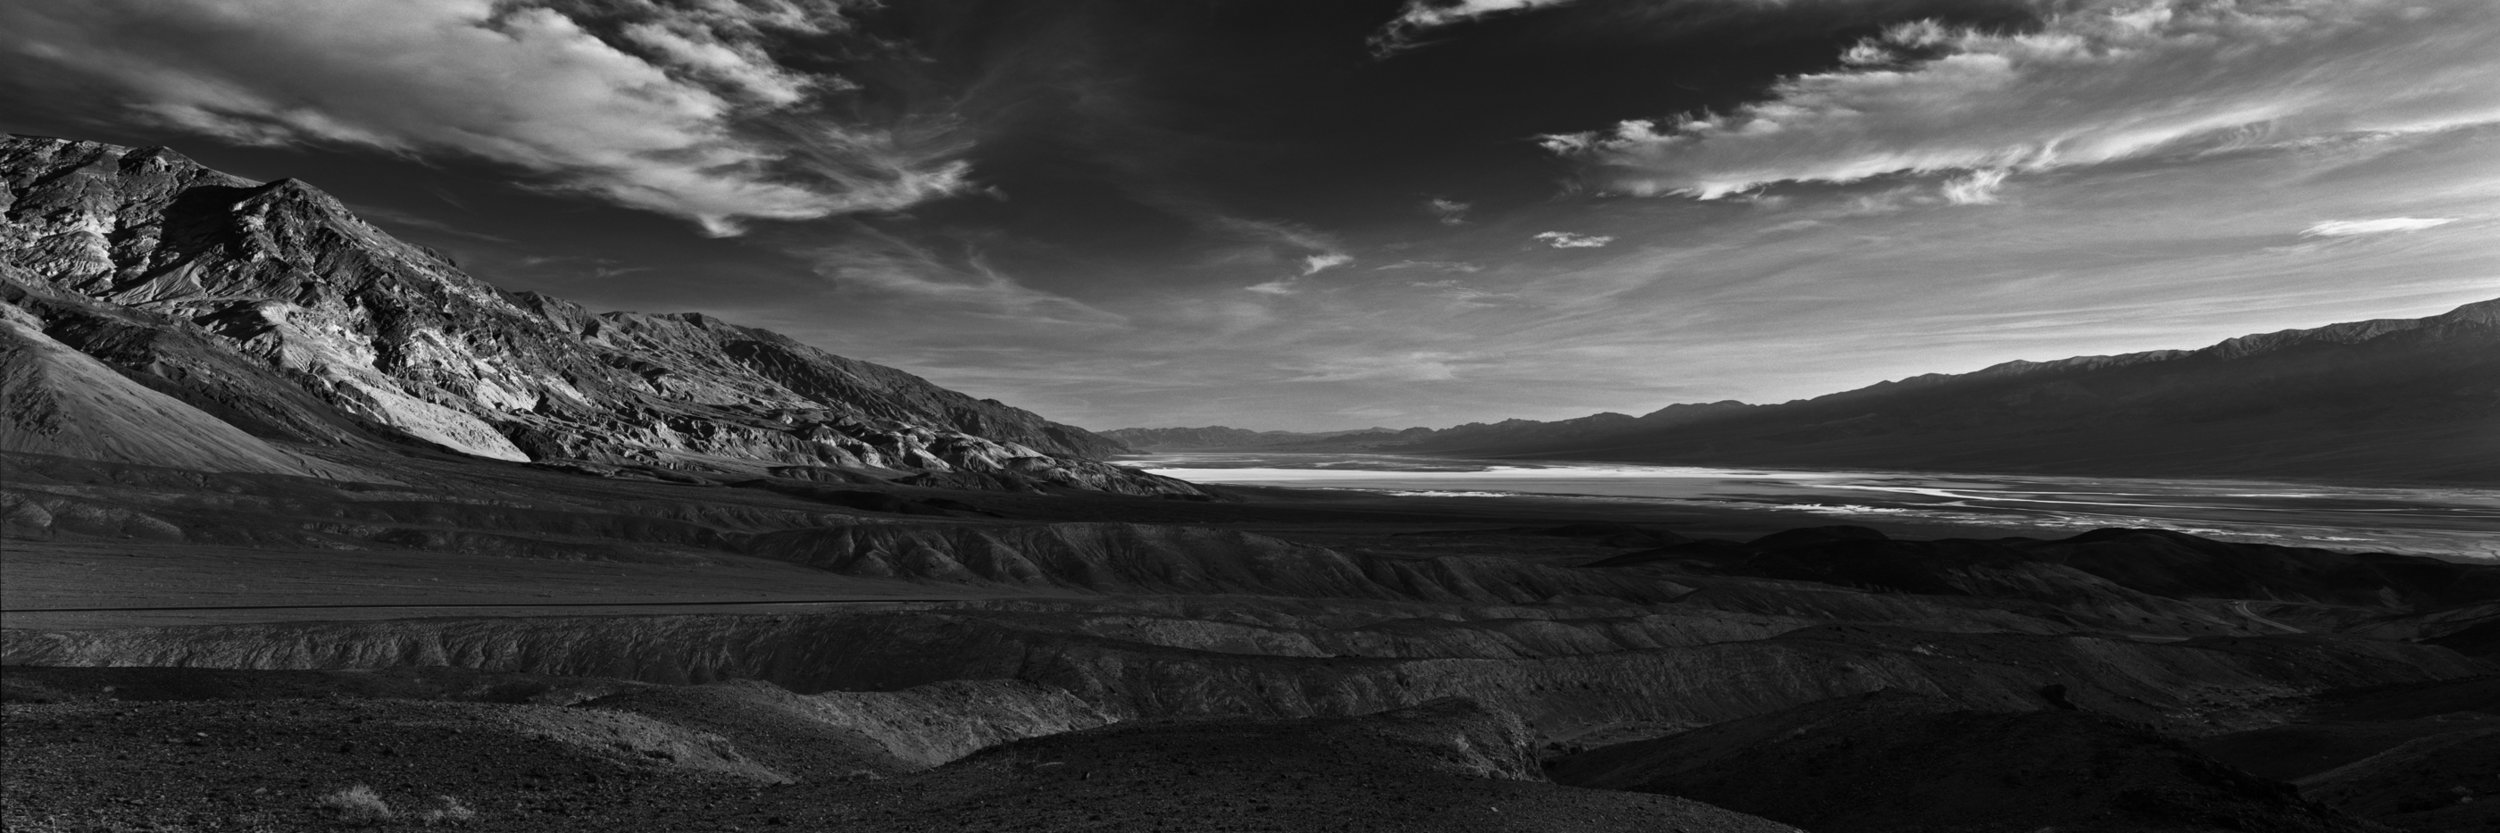 View From Artists Palette Looking South to Badwater Basin- Death Valley National Park, California and Nevada